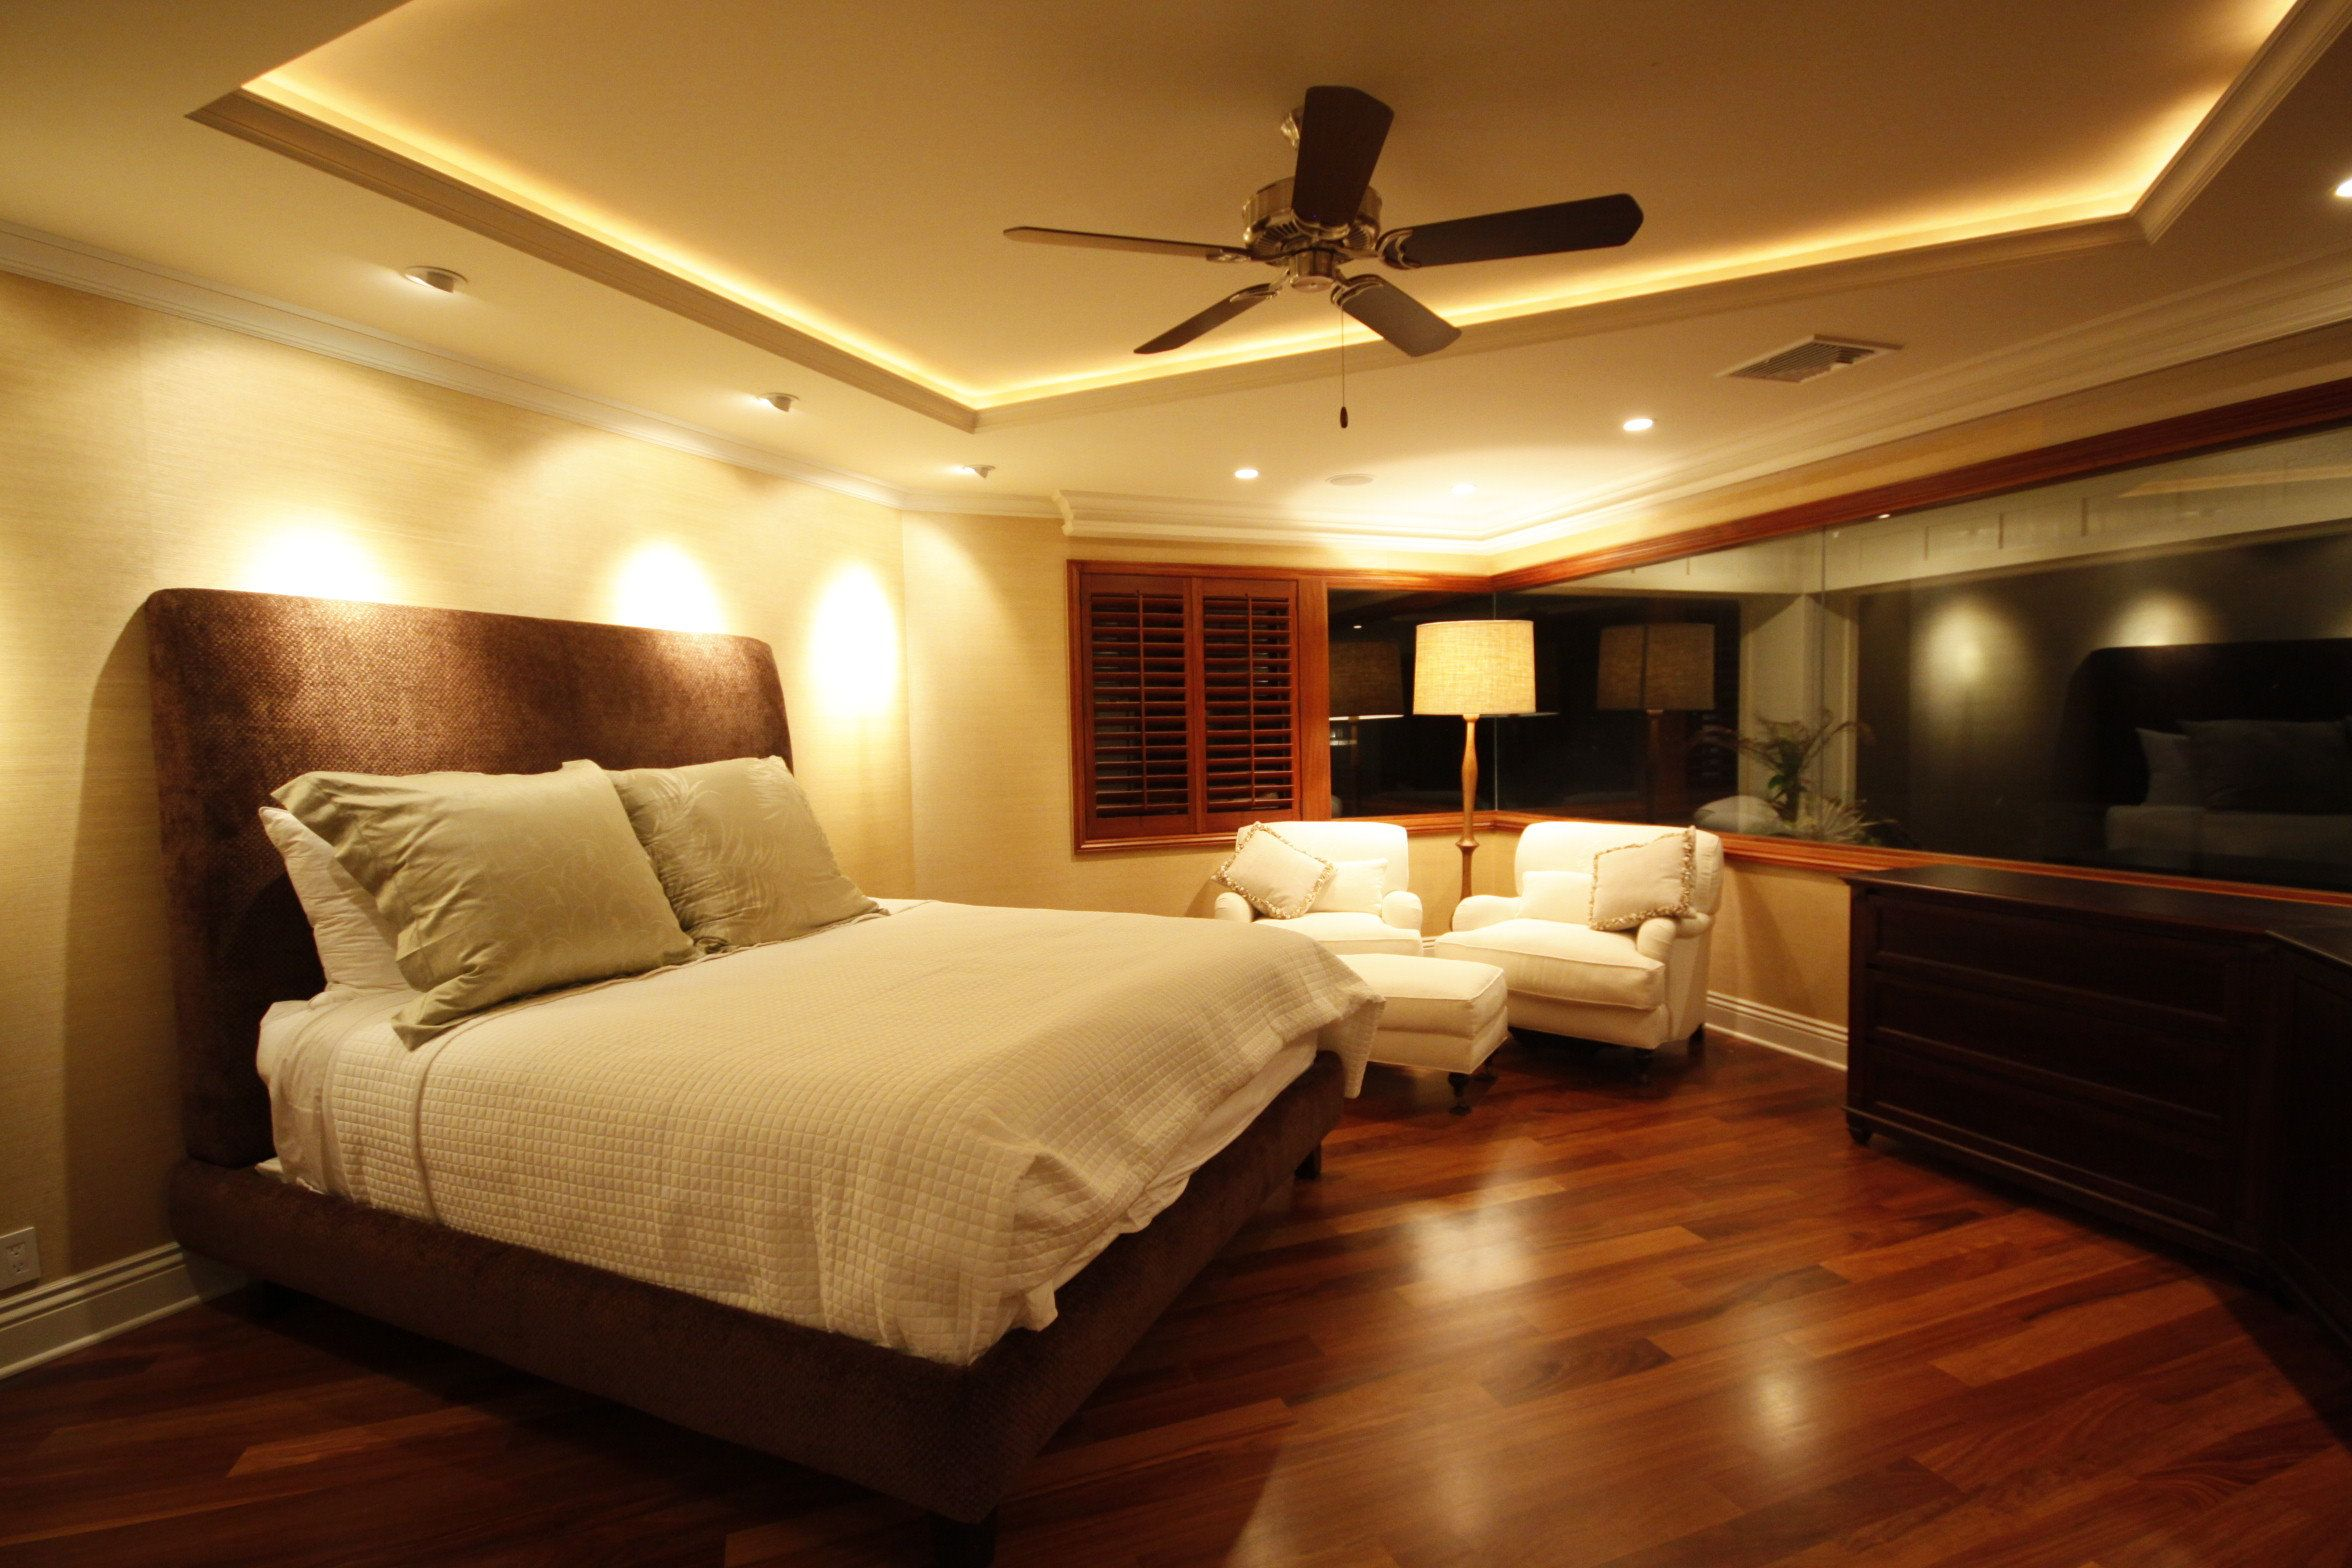 Appealing master bedroom modern decor with wooden floors for Master bed design ideas